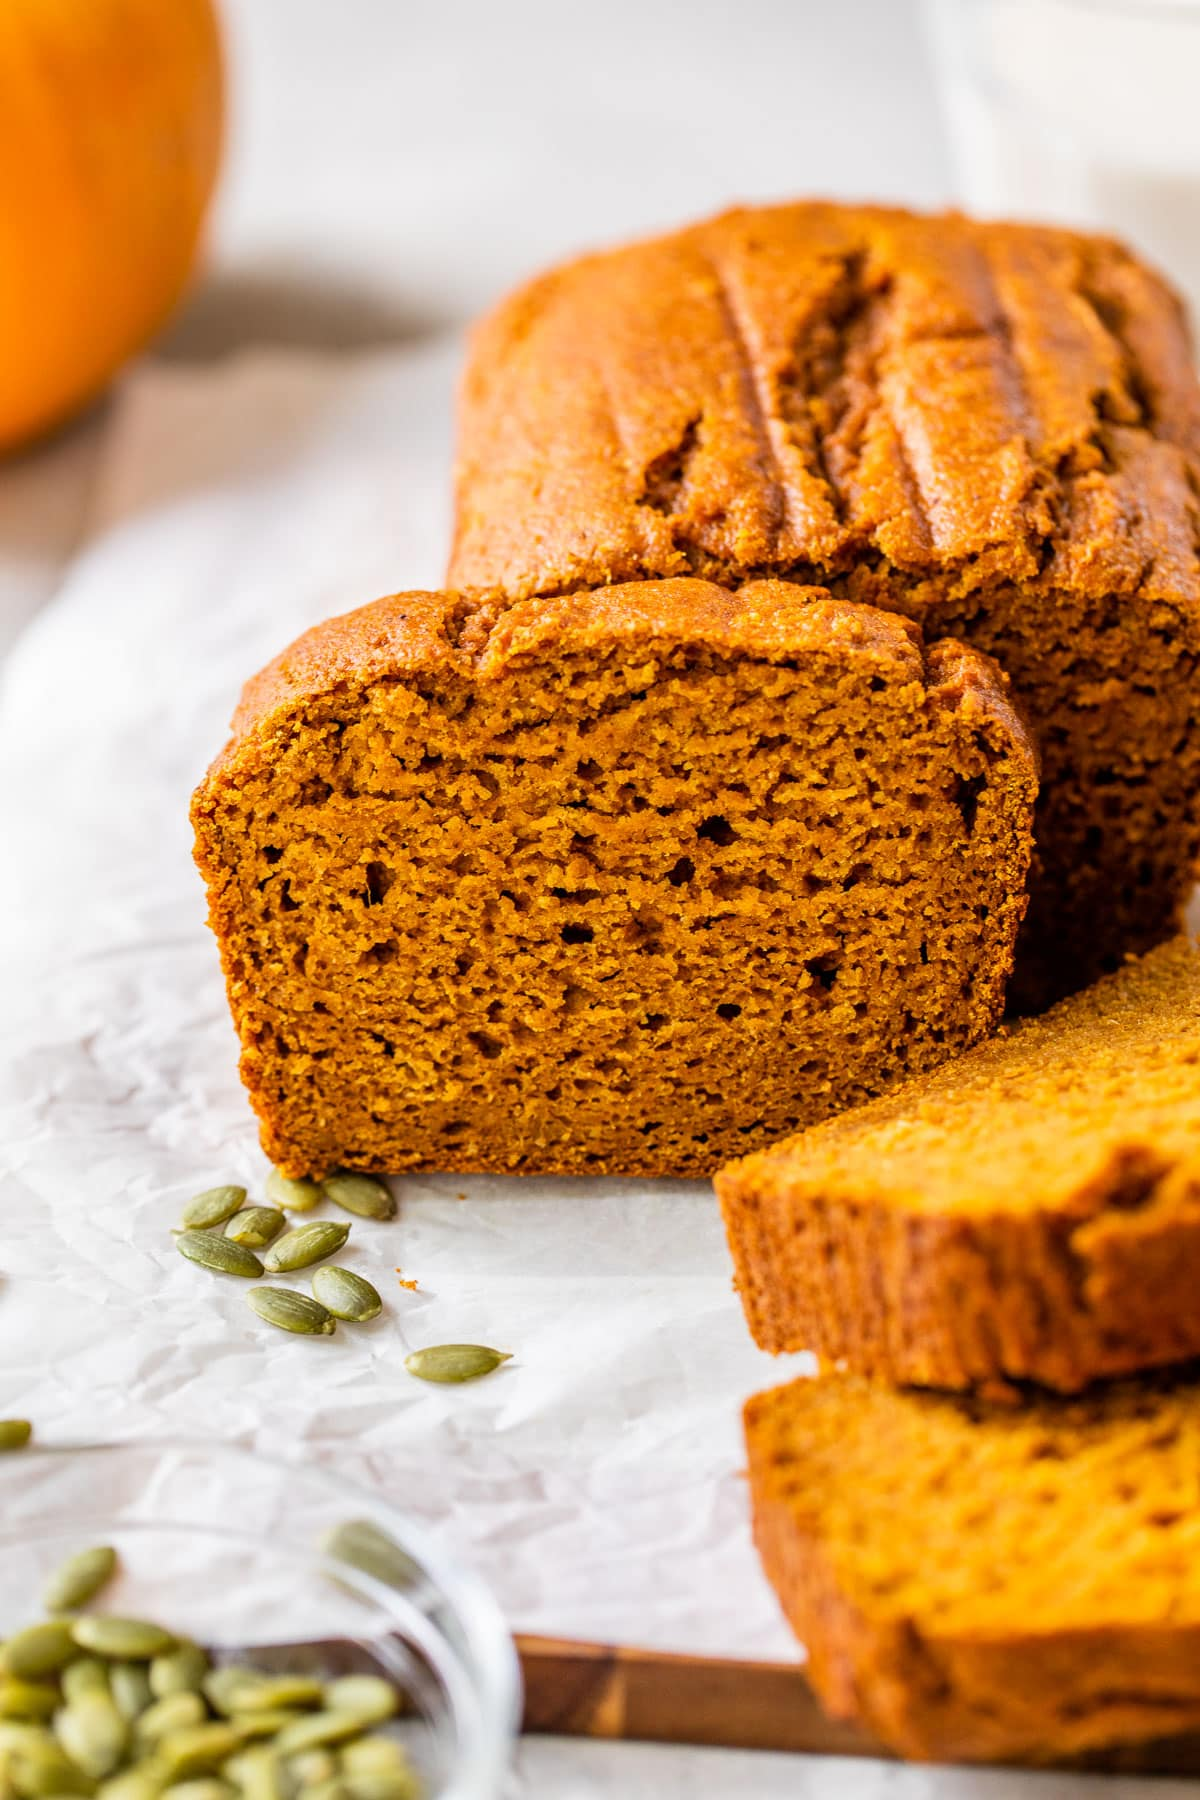 Healthy pumpkin bread is soft, moist, and delicious! Made with honey, Greek yogurt, whole wheat flour, and millet, this easy one-bowl pumpkin bread recipe will be your new favorite! #healthy #recipe #pumpkin